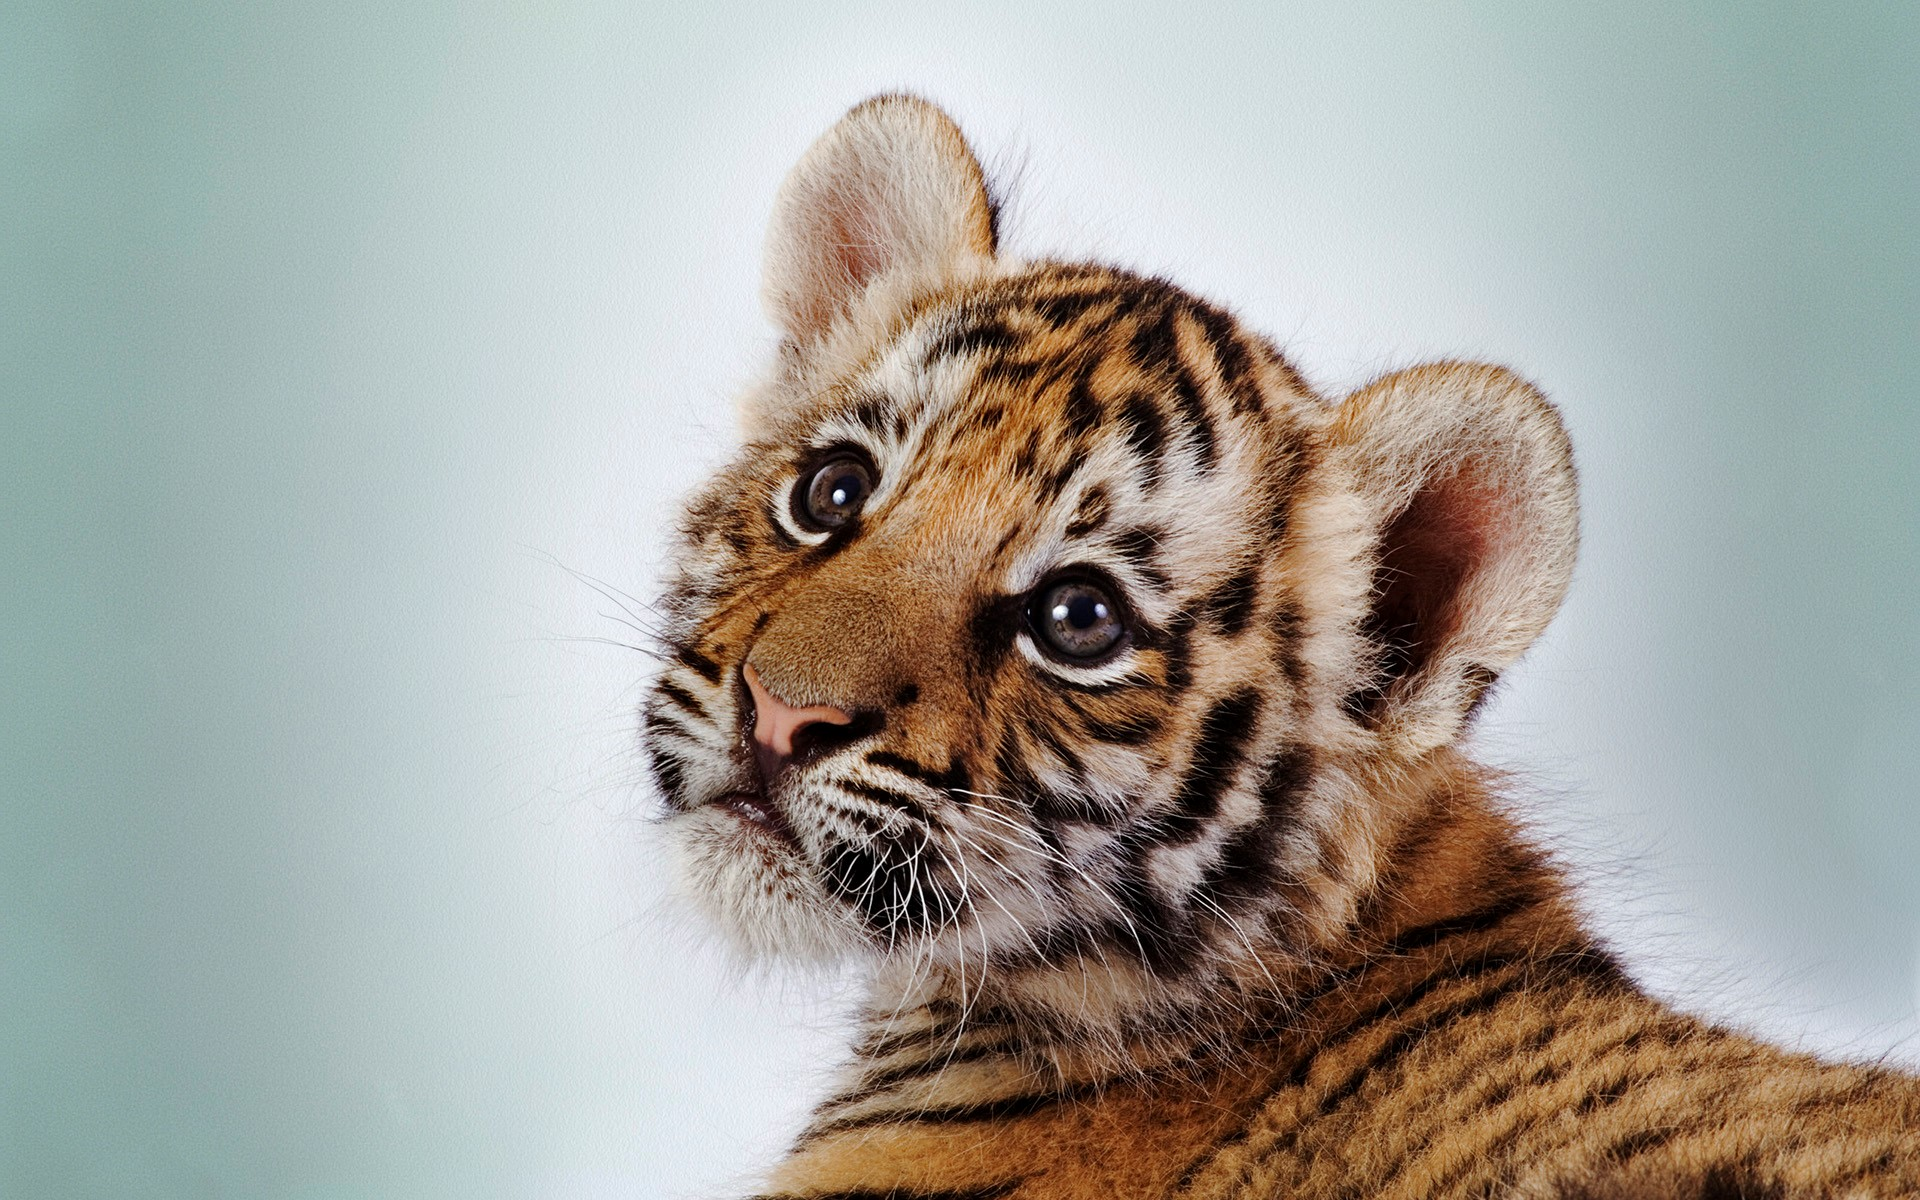 Tiger Wallpapers Free Download White Cute Cub Animal HD Desktop Images